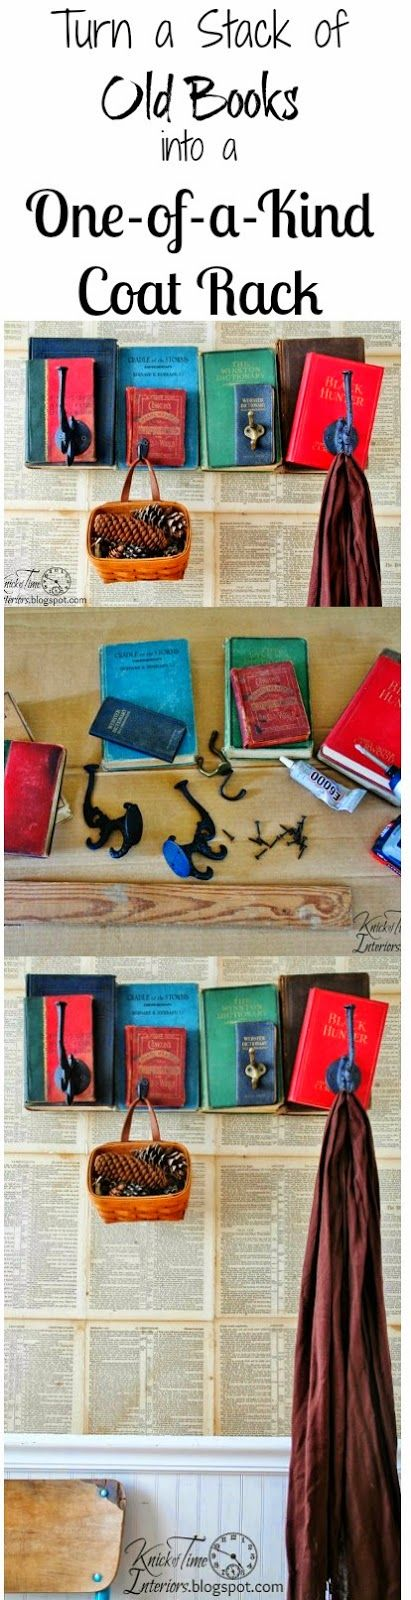 Old Books into Unique Coat Rack! ~Full tutorial at Knick of Time~ http://knickoftimeinteriors.blogspot.com